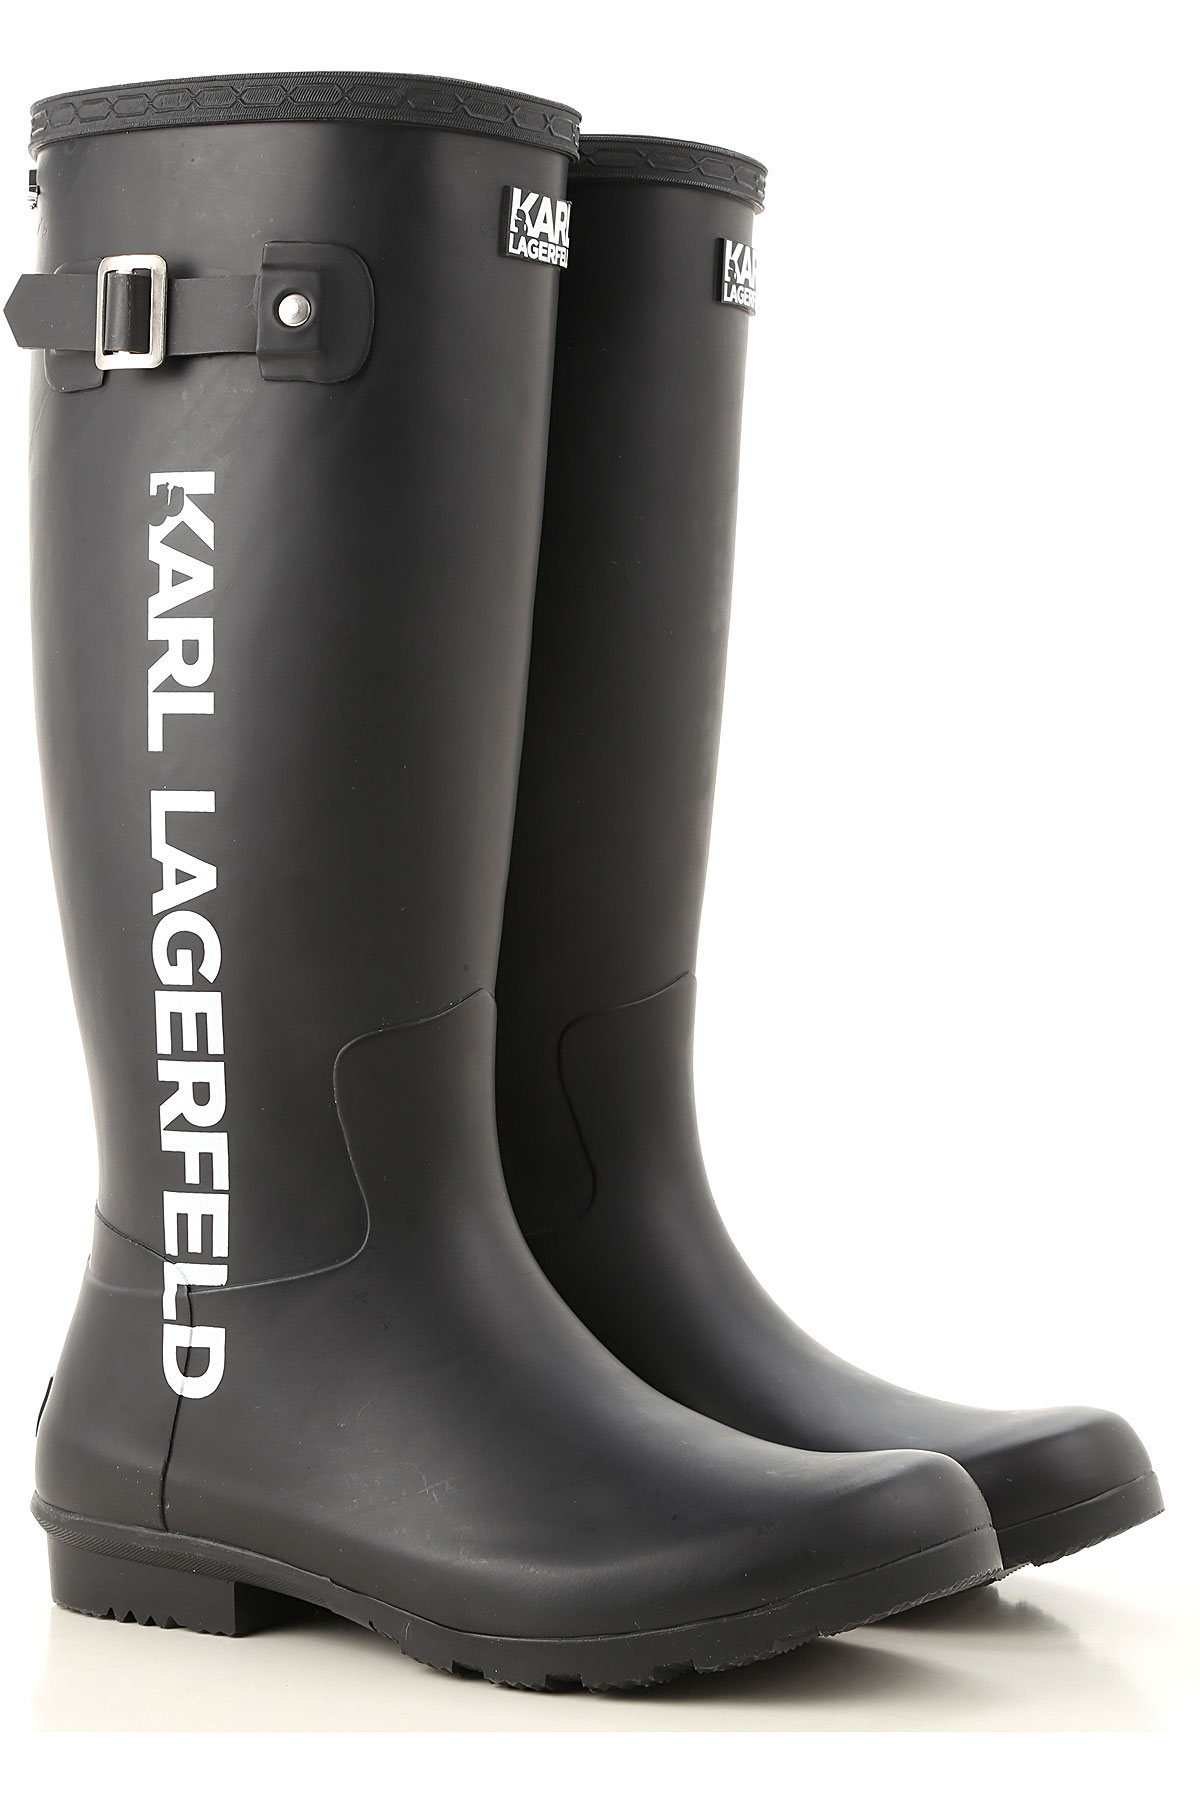 Karl Lagerfeld Boots for Women, Booties On Sale, Black Rubber, Rubber, 2019, UK 4 - EU 37 - US 7 UK 5 - EU 38 - US 8 UK 6 - EU 39 UK 7 - EU 40